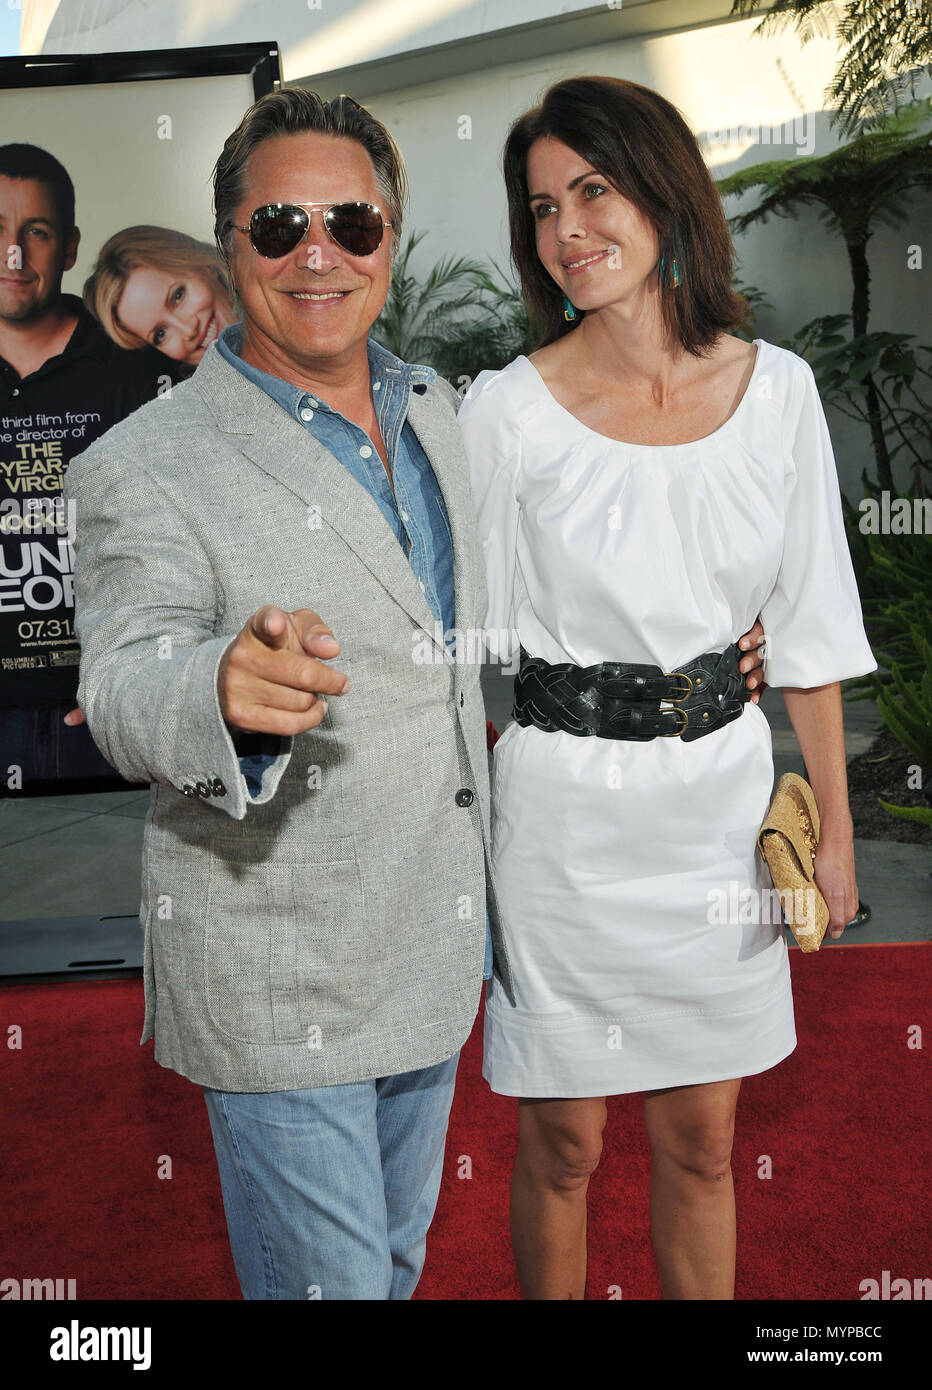 2bb7eb4108f7e Don Johnson and wife Kelley Phleger - Funny People Premiere at the Arclight  Theatre In Los Angeles.01 DonJohnson PhlegerKelley 01 Event in Hollywood  Life ...